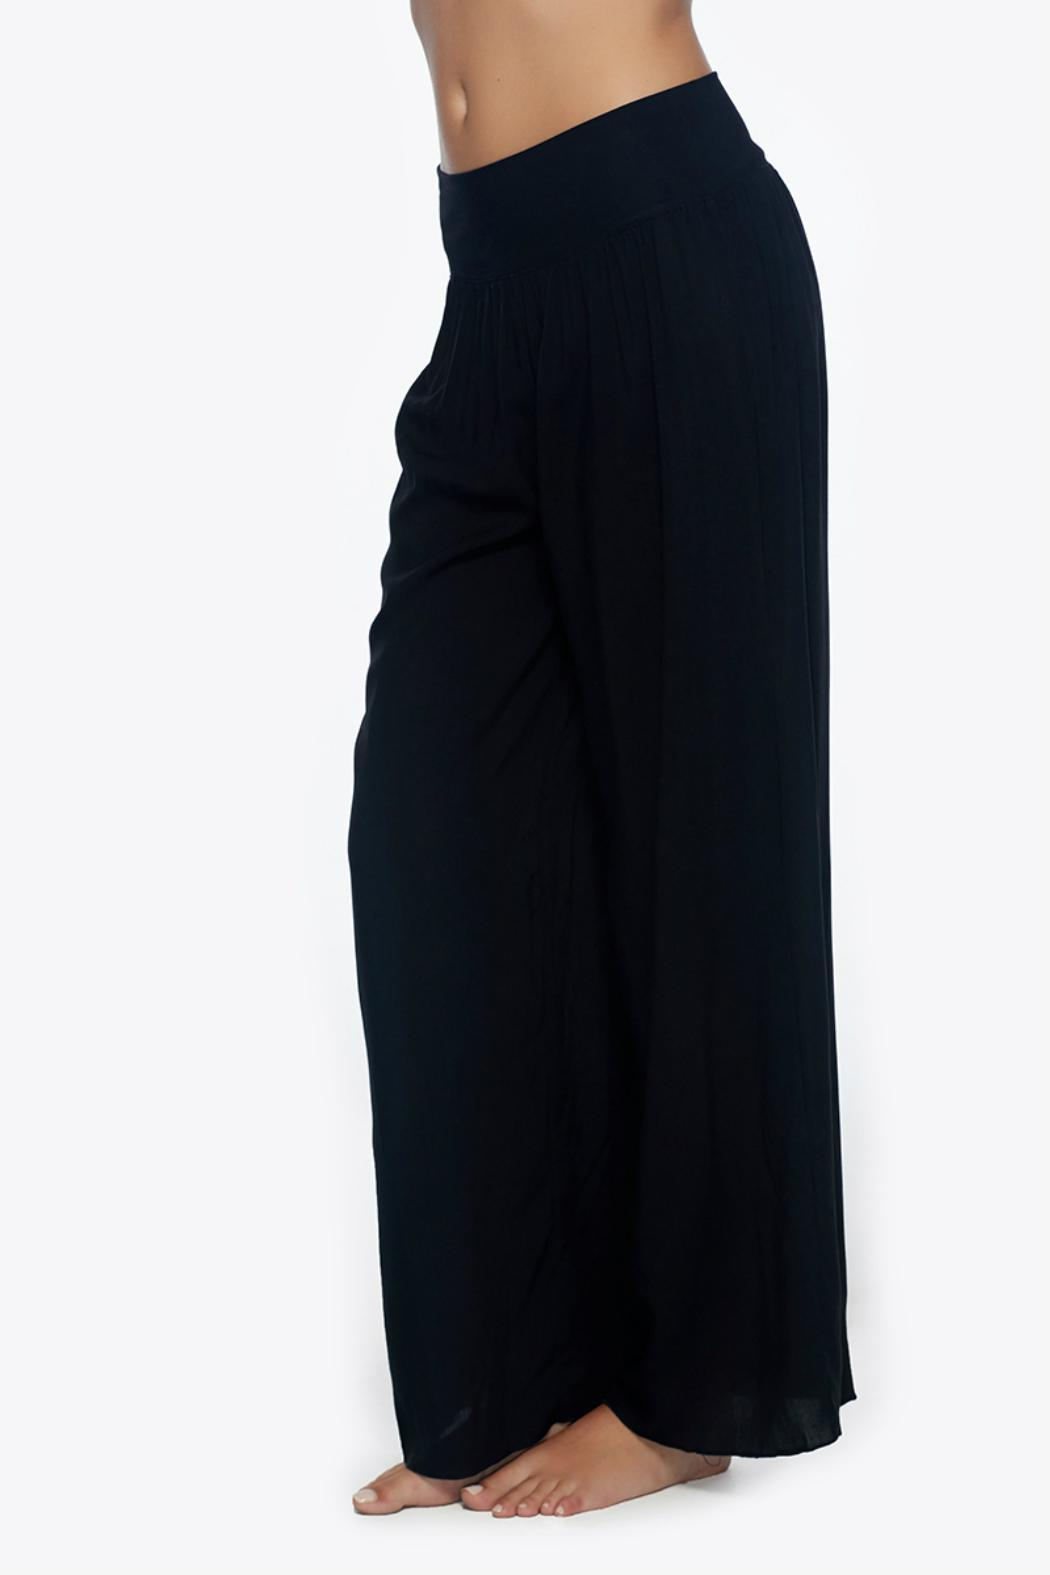 BODY GLOVE Sian Pant - Front Full Image